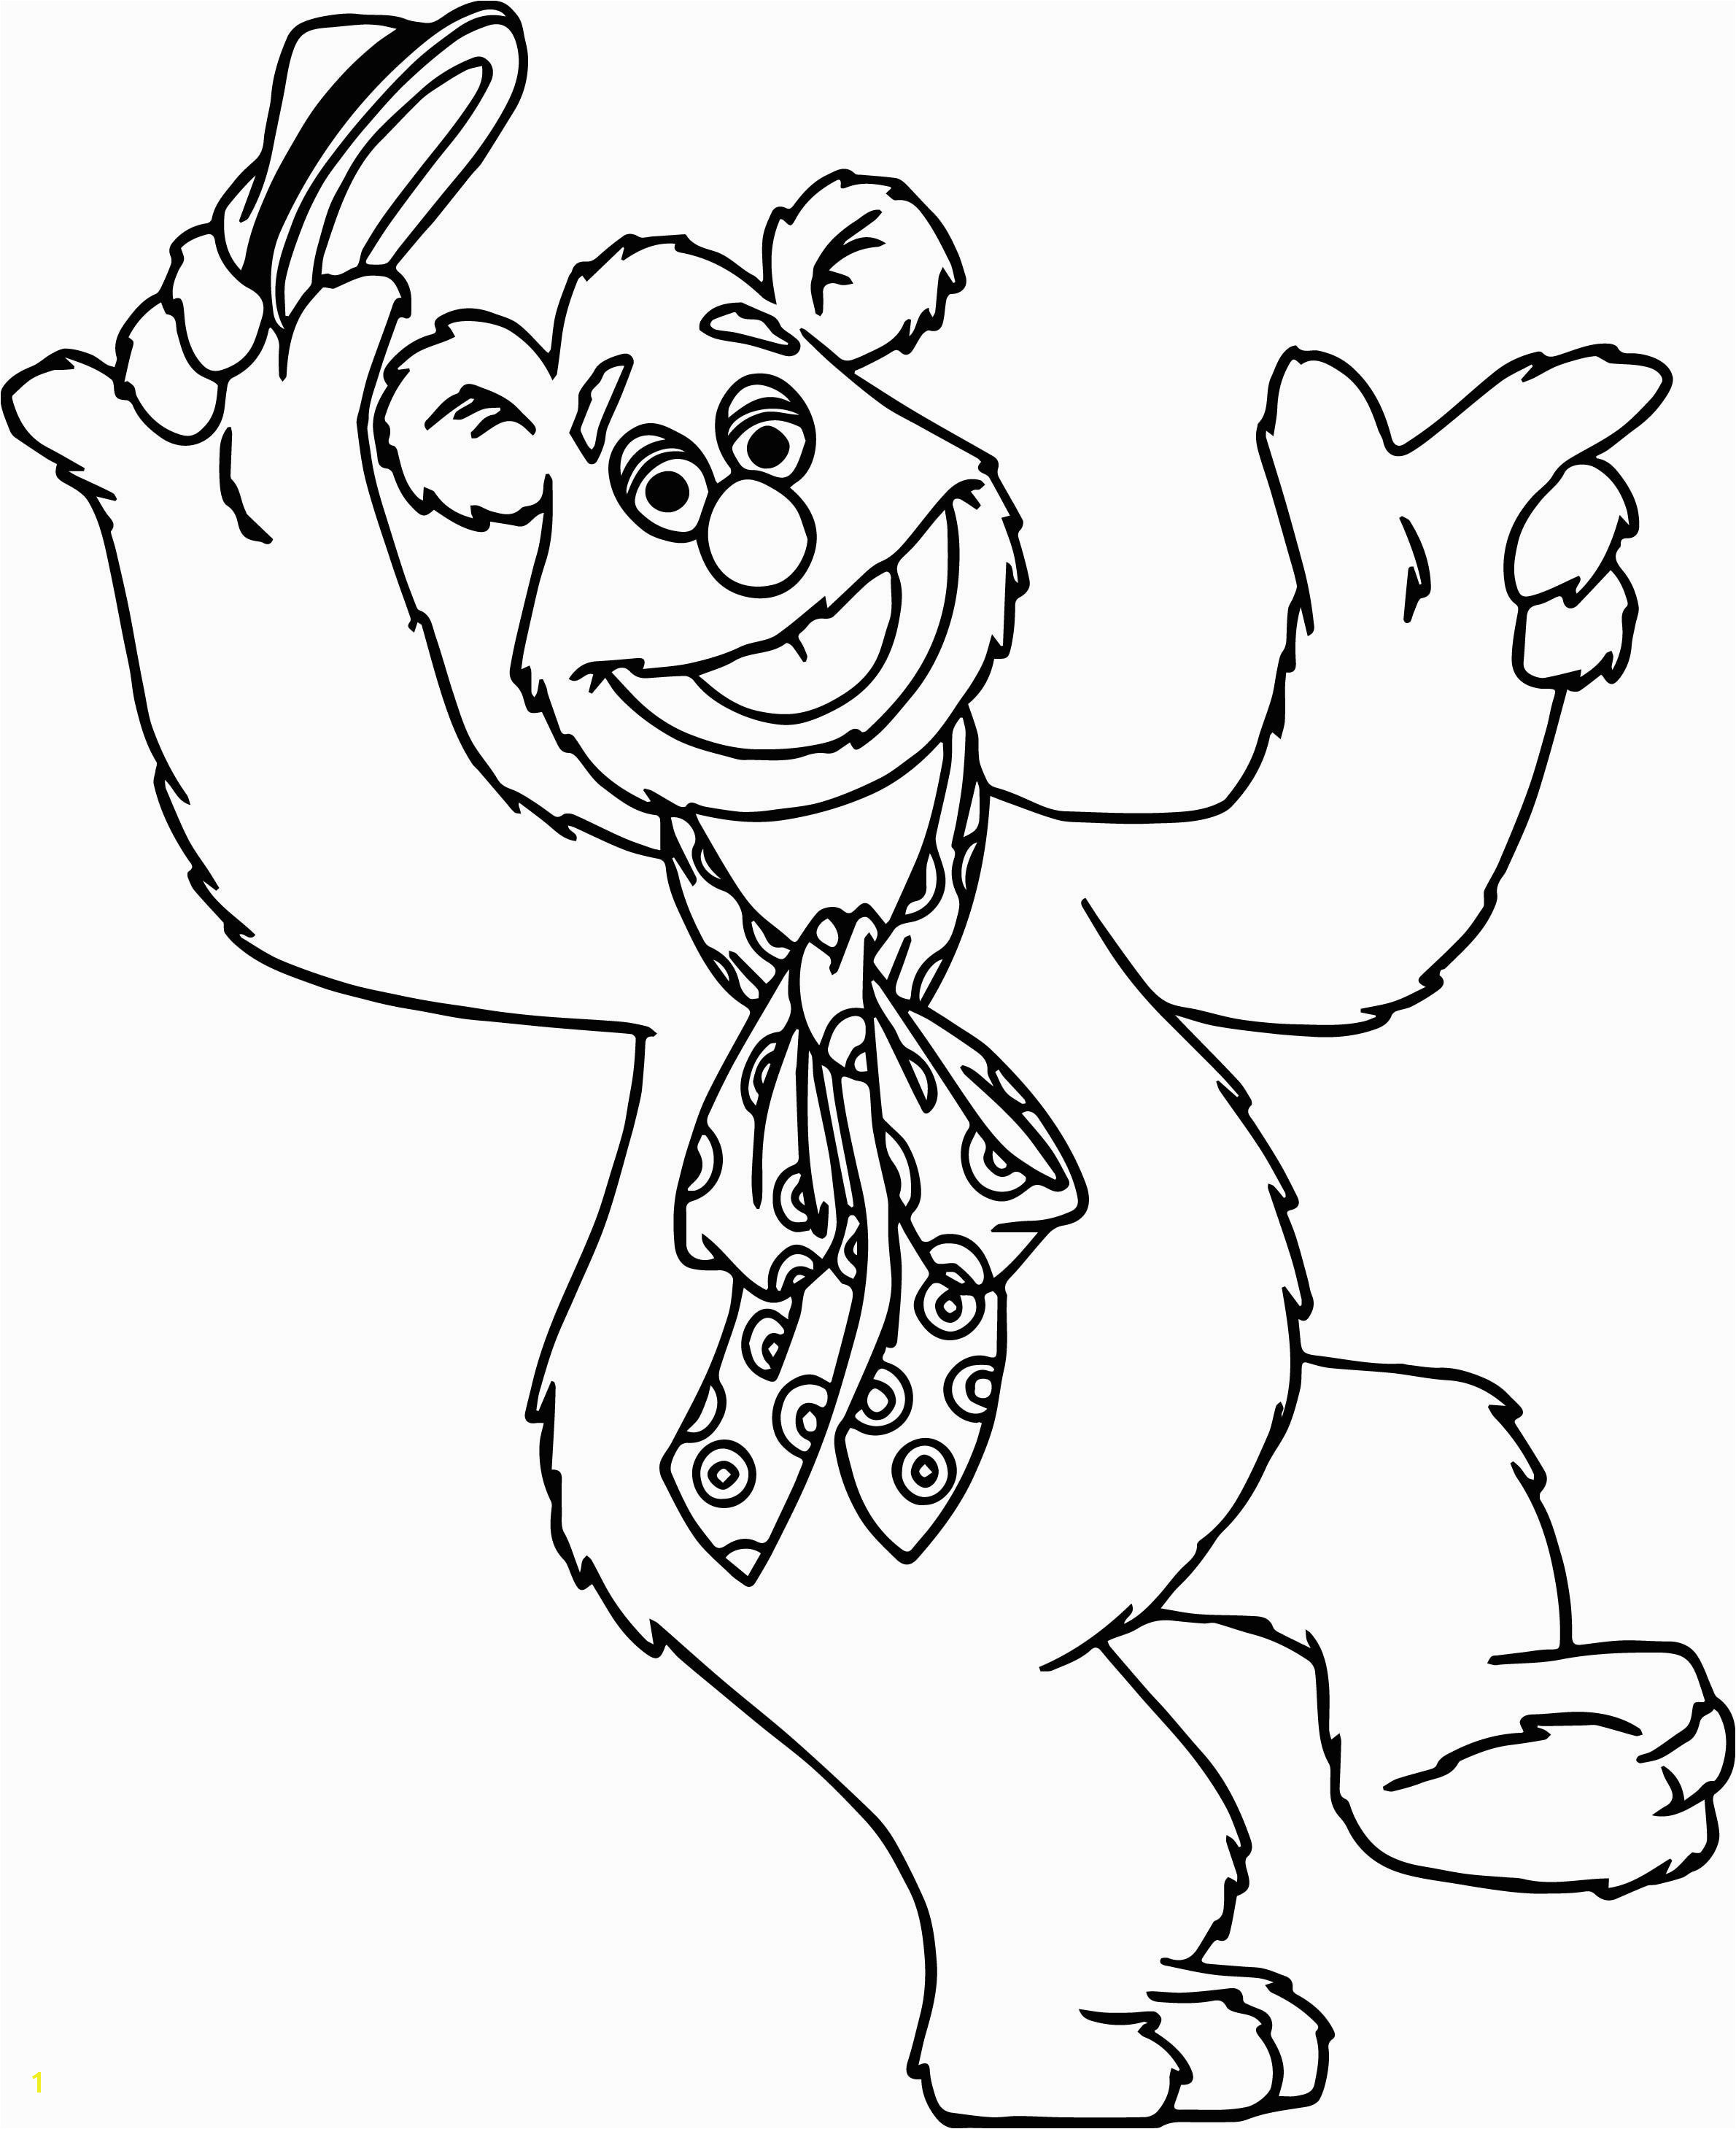 cool The Muppets Fozzie Bear Coloring Pages